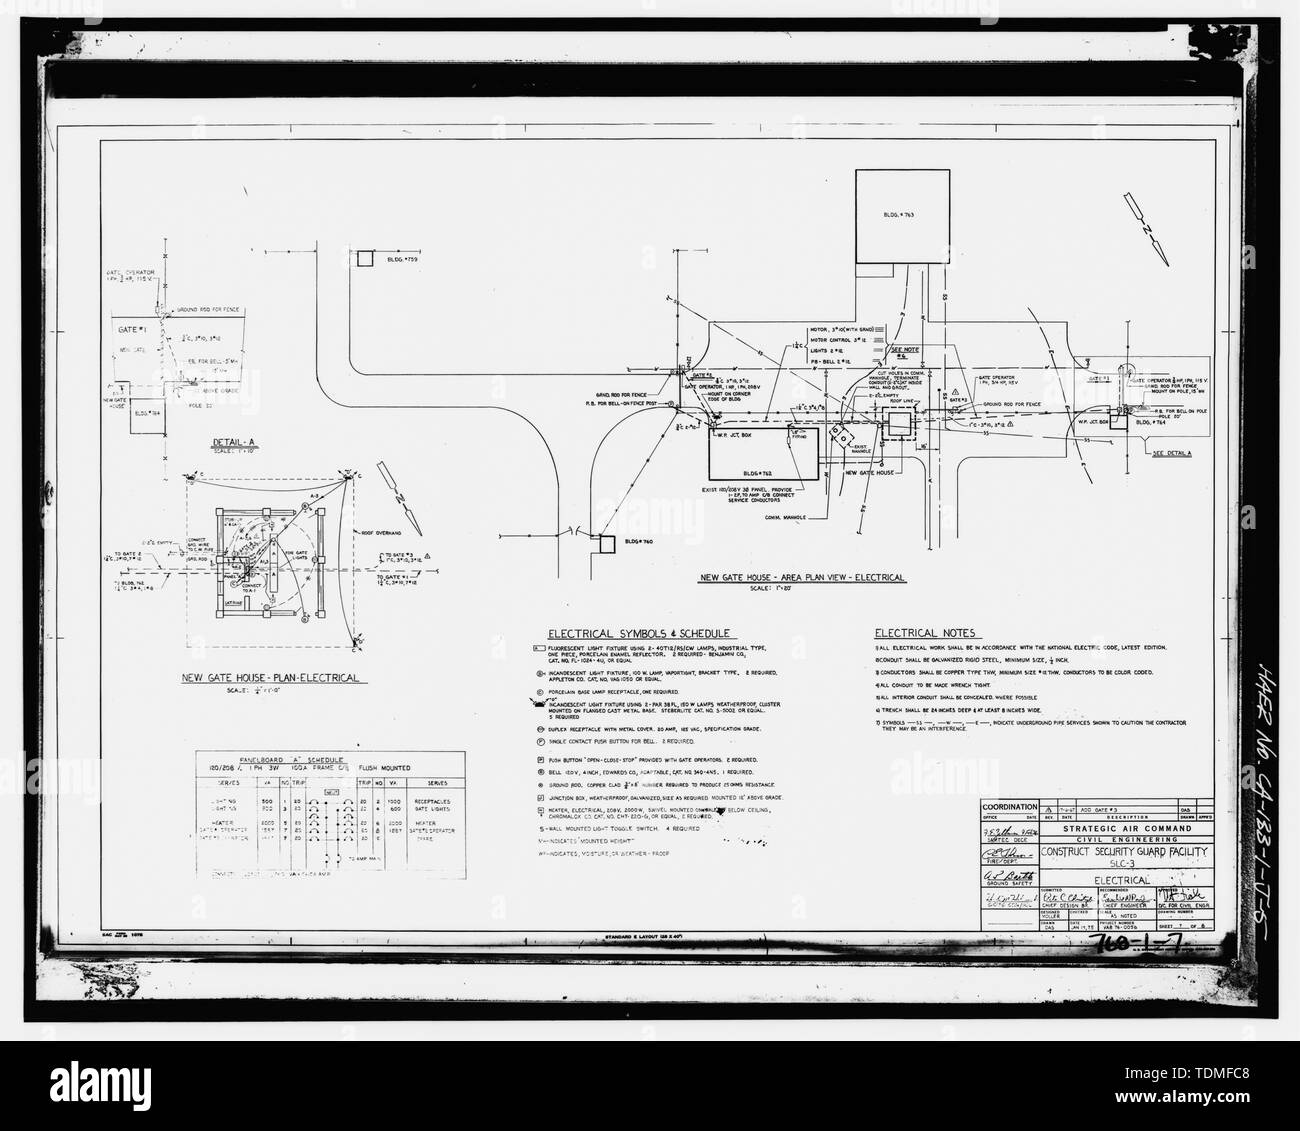 hight resolution of photocopy of drawing 1975 electrical drawing by the strategic air command usaf electrical